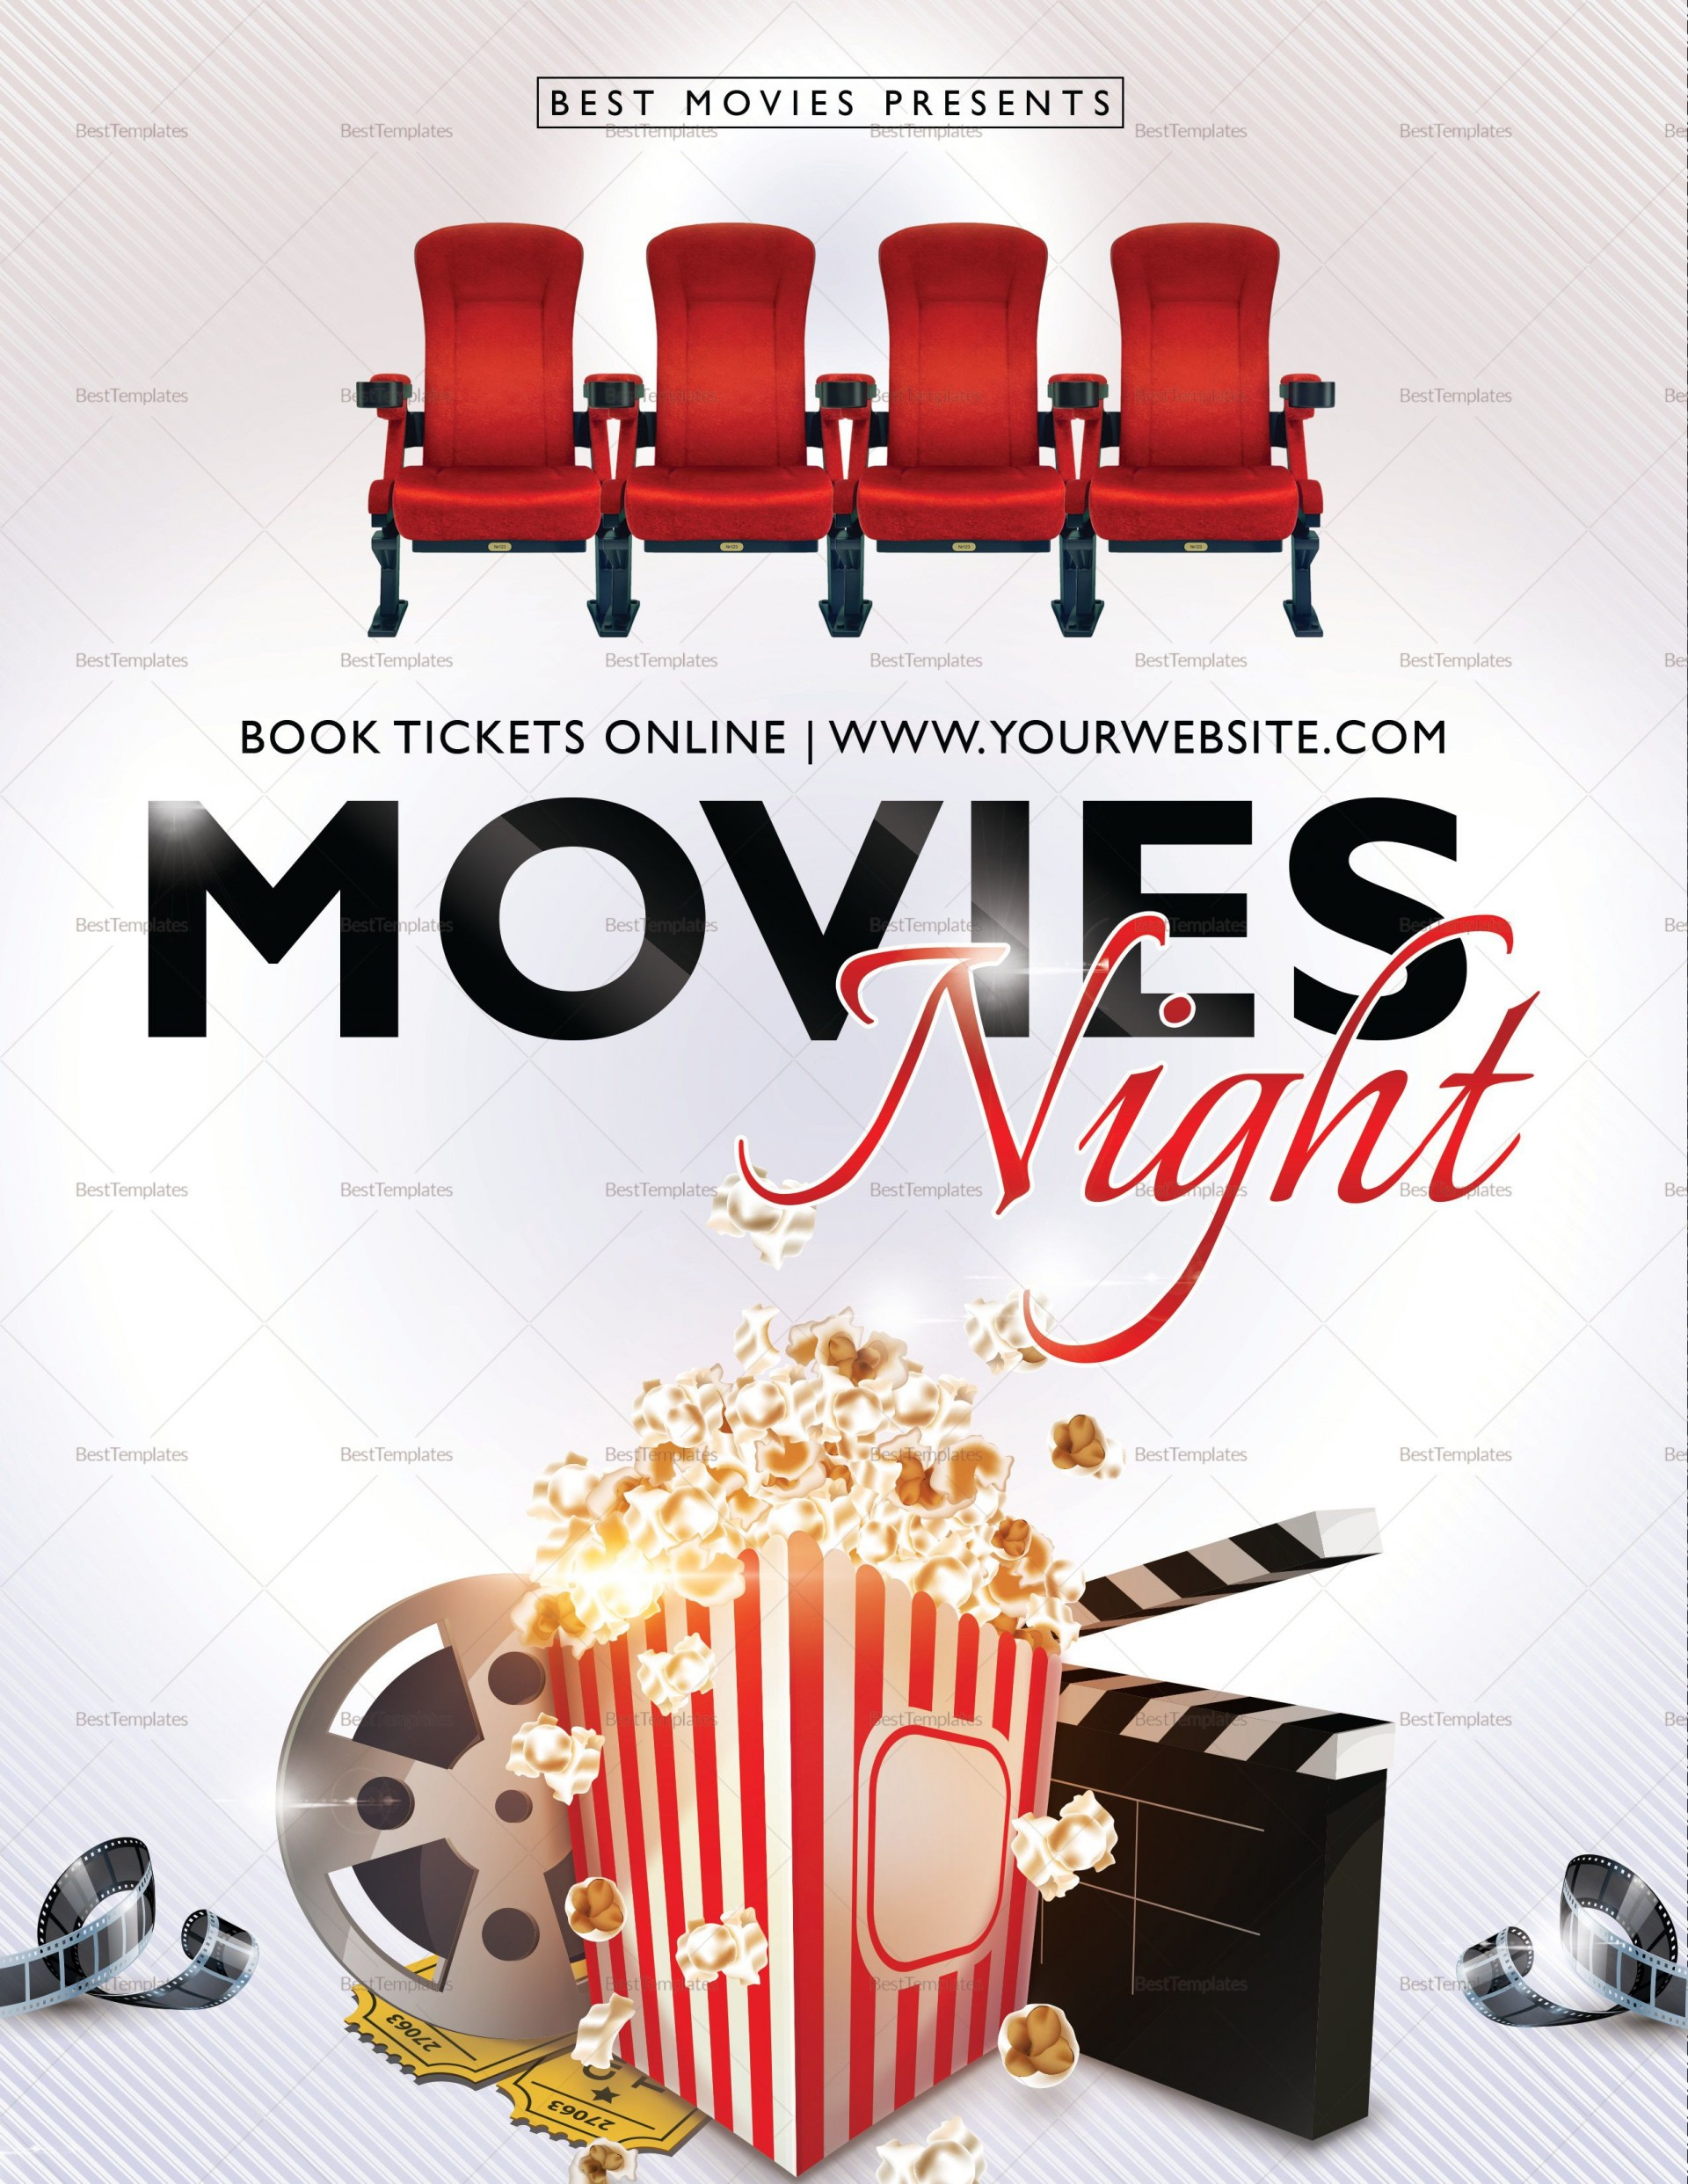 004 Frightening Movie Night Flyer Template Highest Quality  Templates Free Microsoft Word1920